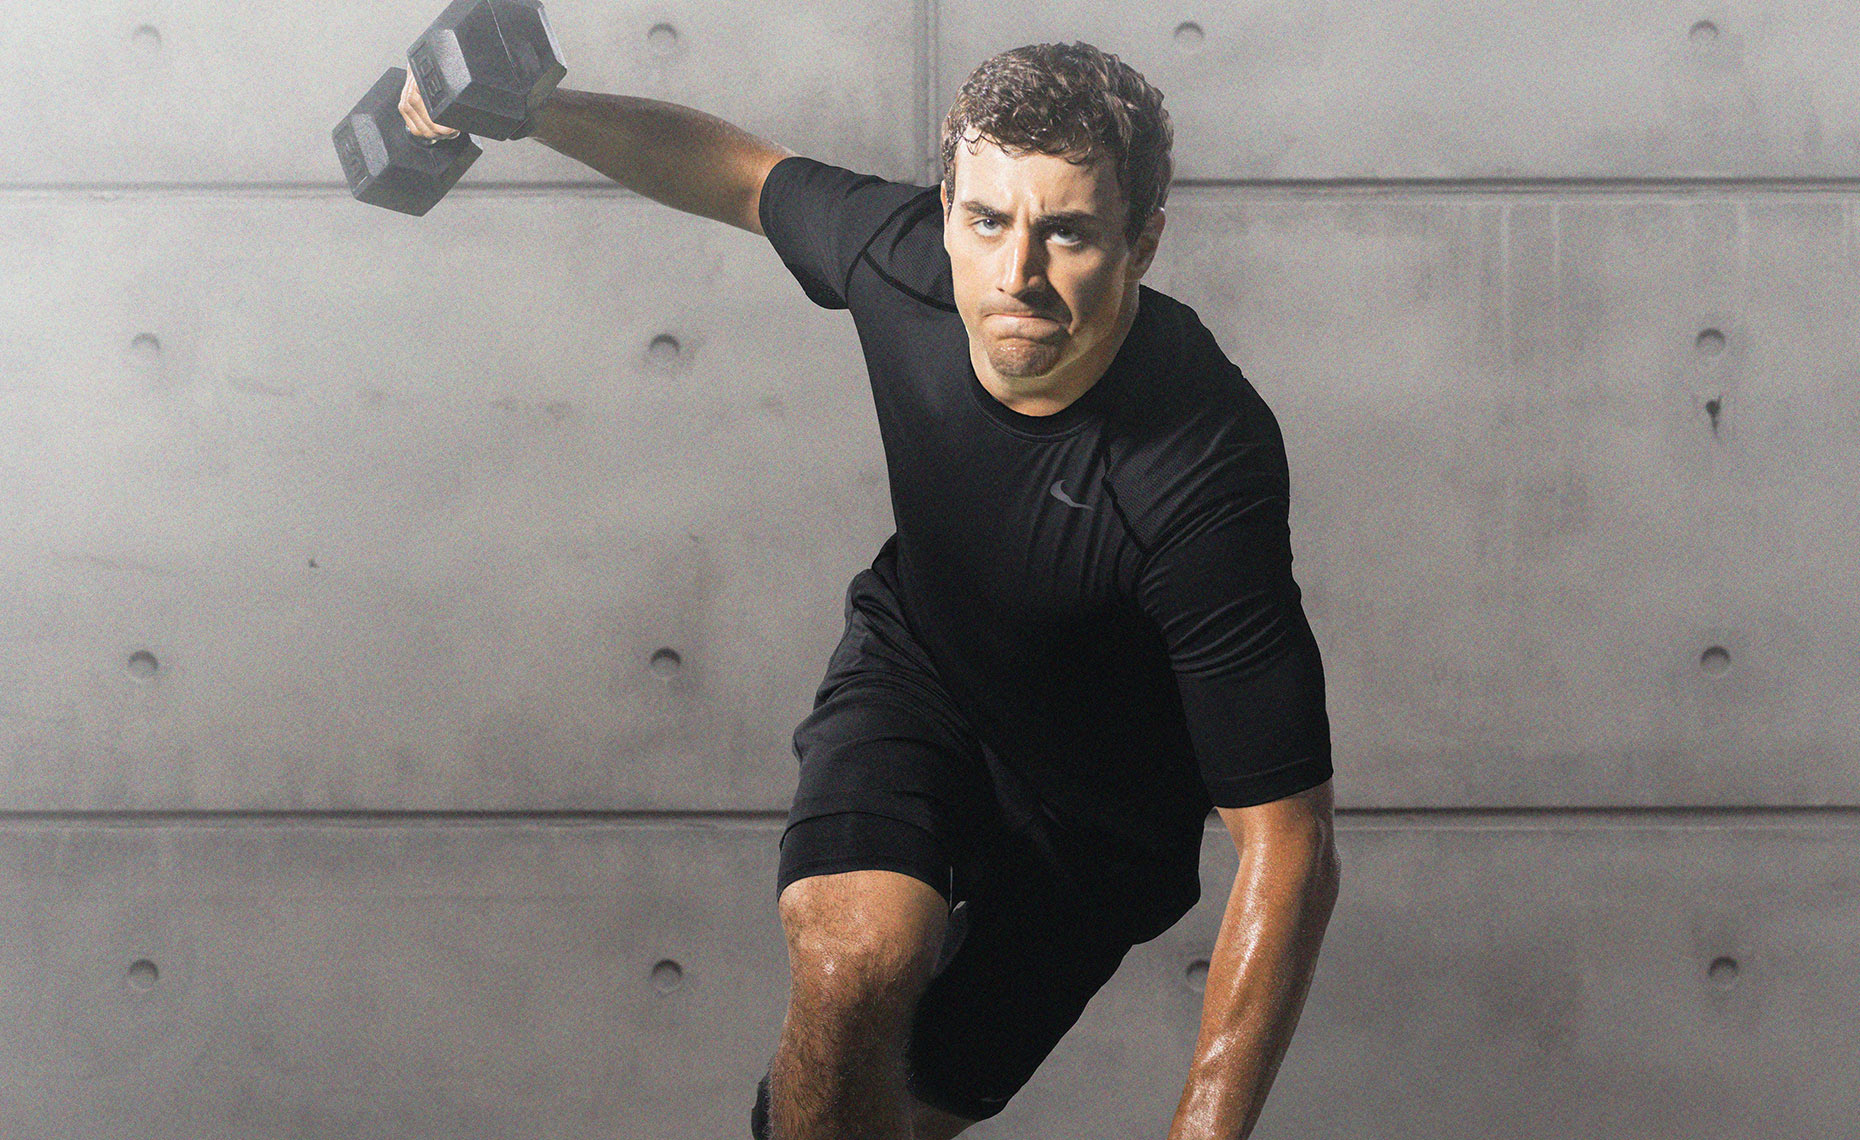 Jordan Eberle, Nike Hockey Training